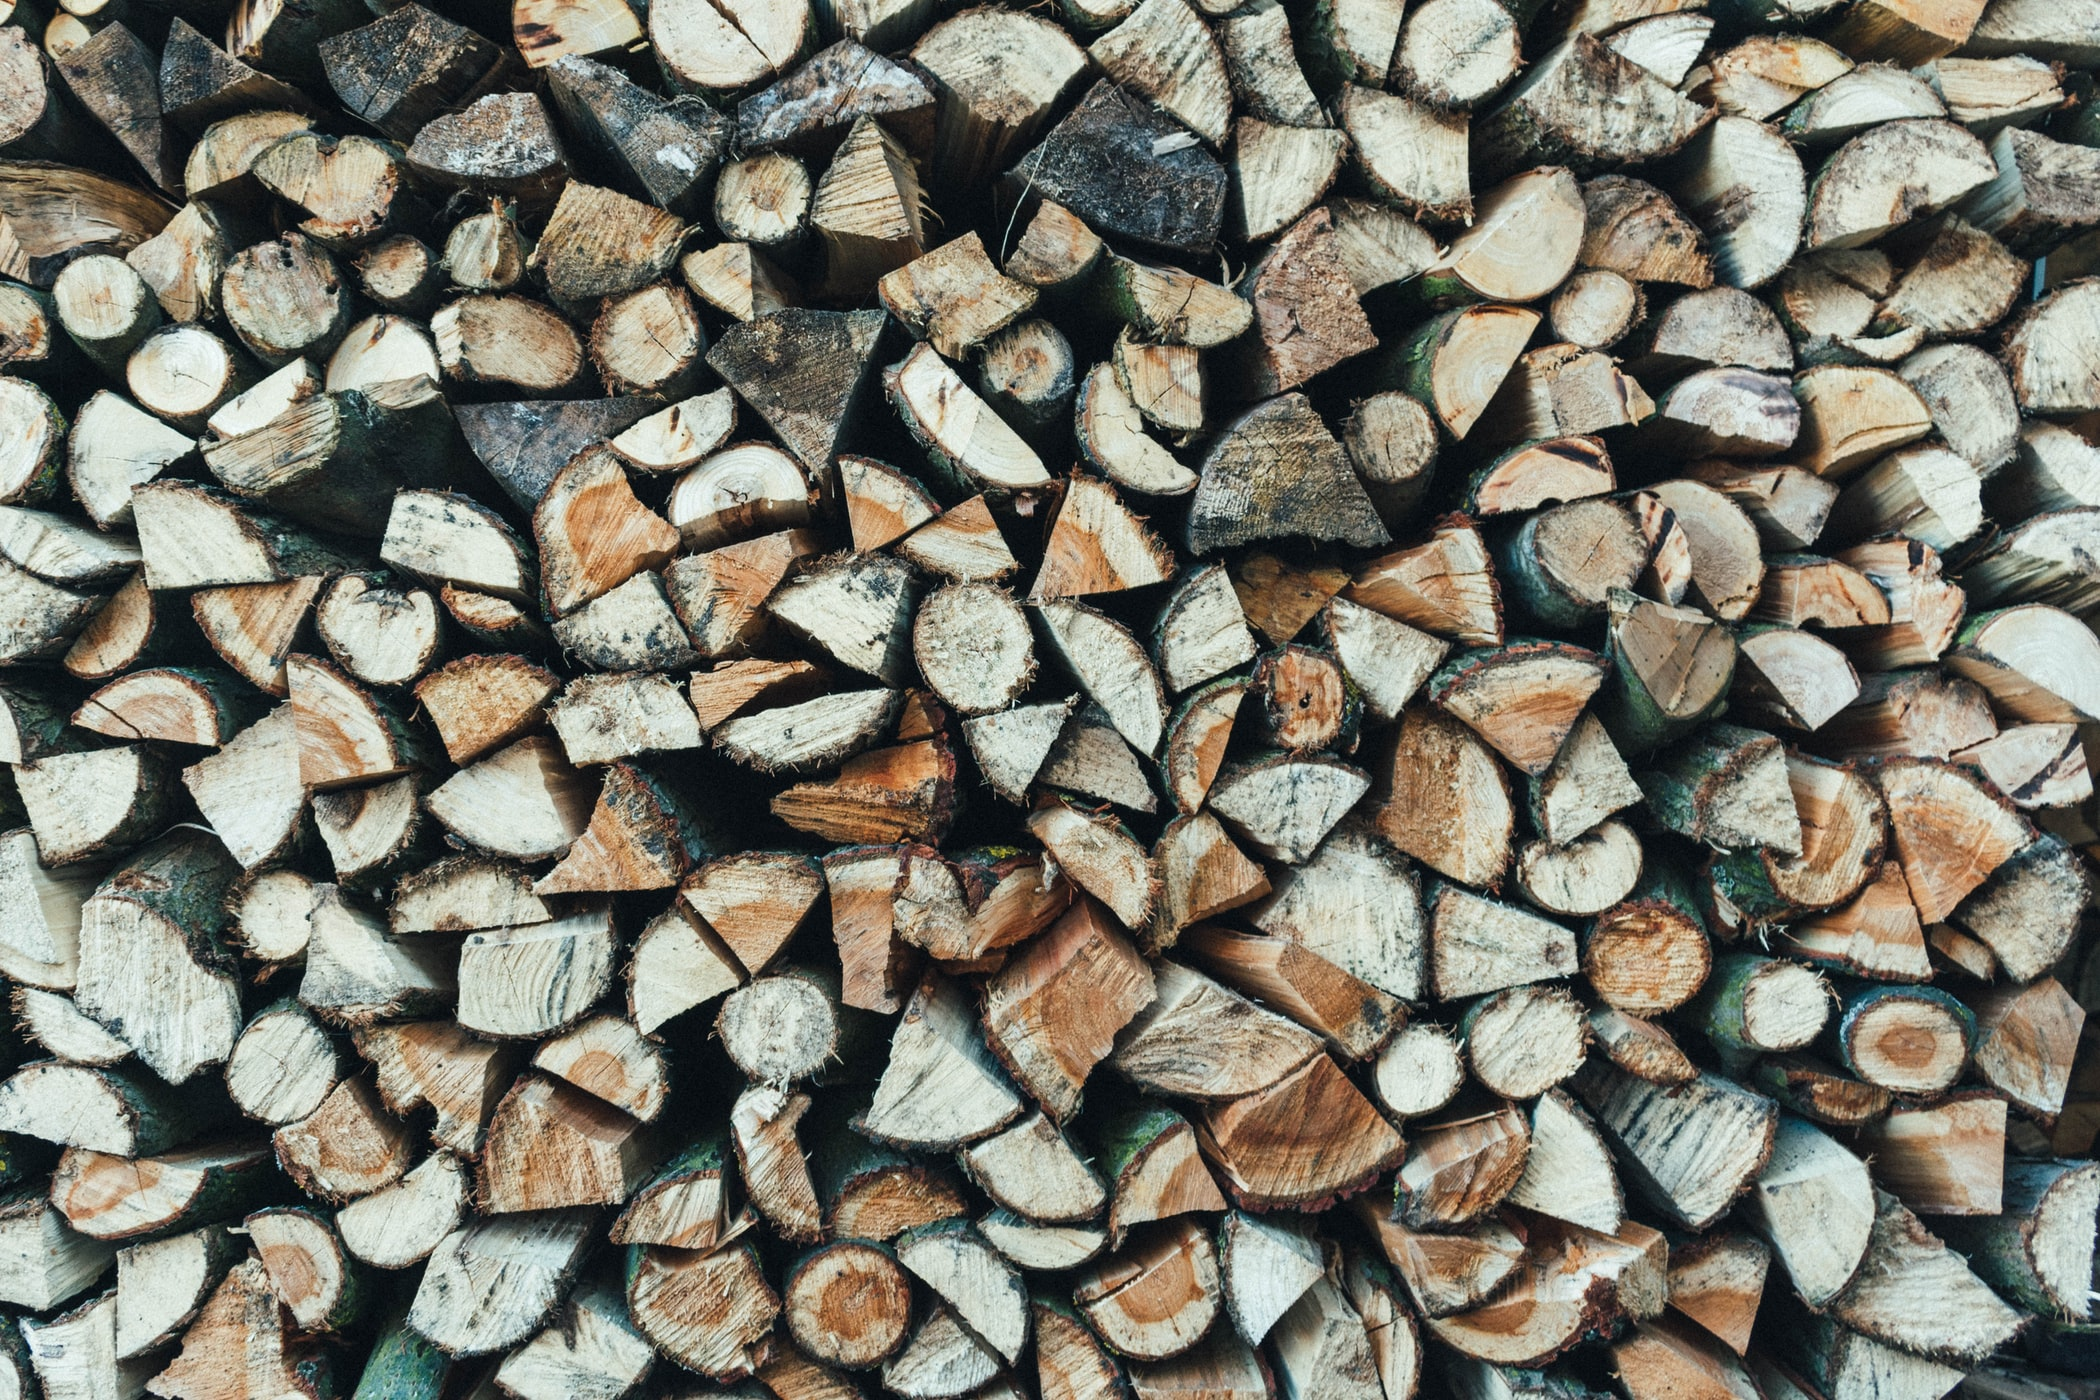 Sell services - Order Firewood with Resonoi